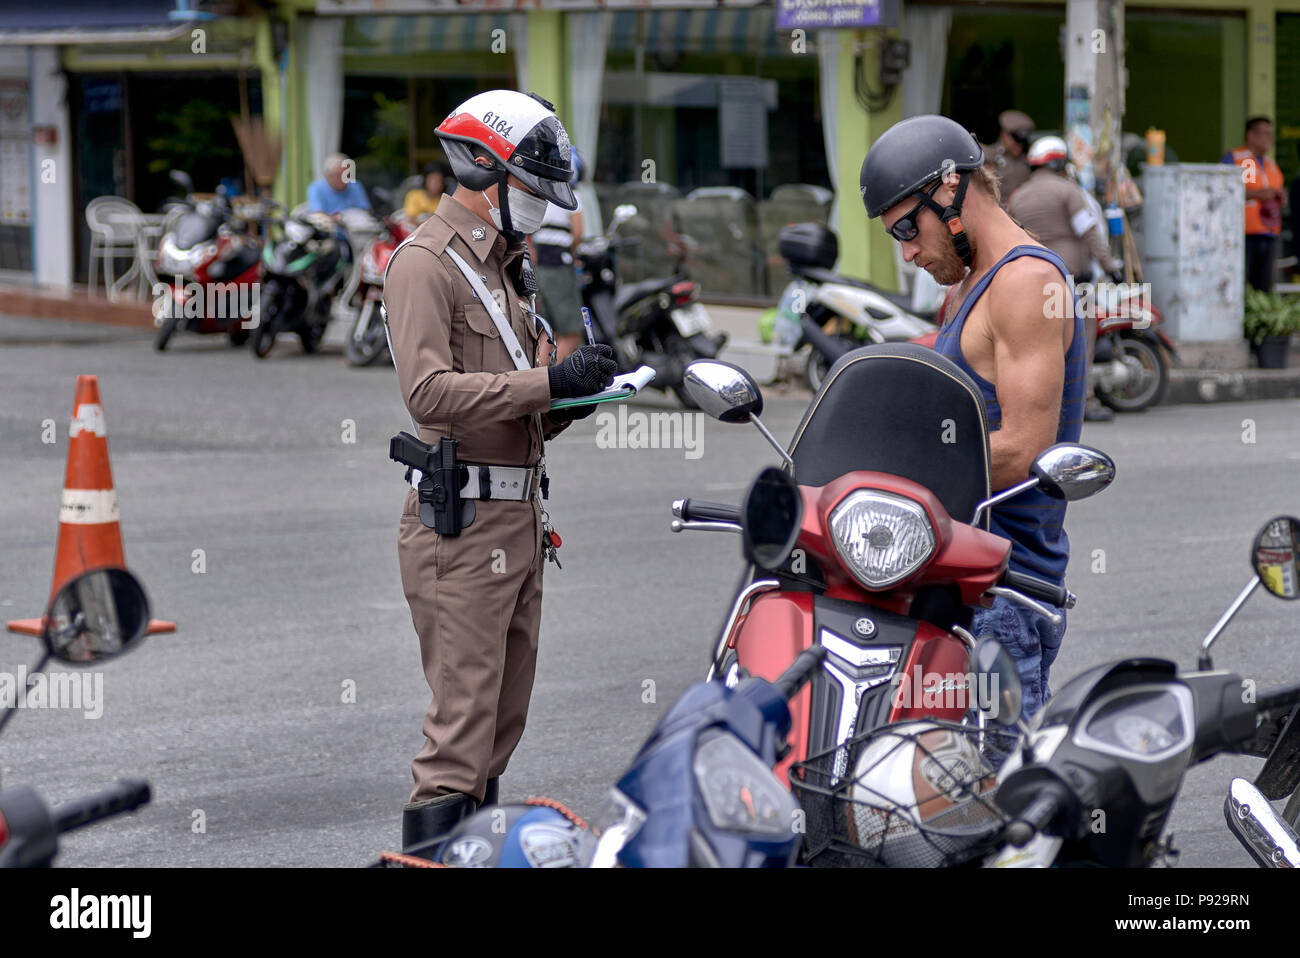 Thailand traffic police with officer issuing a violation ticket to offending motorcycle rider Stock Photo